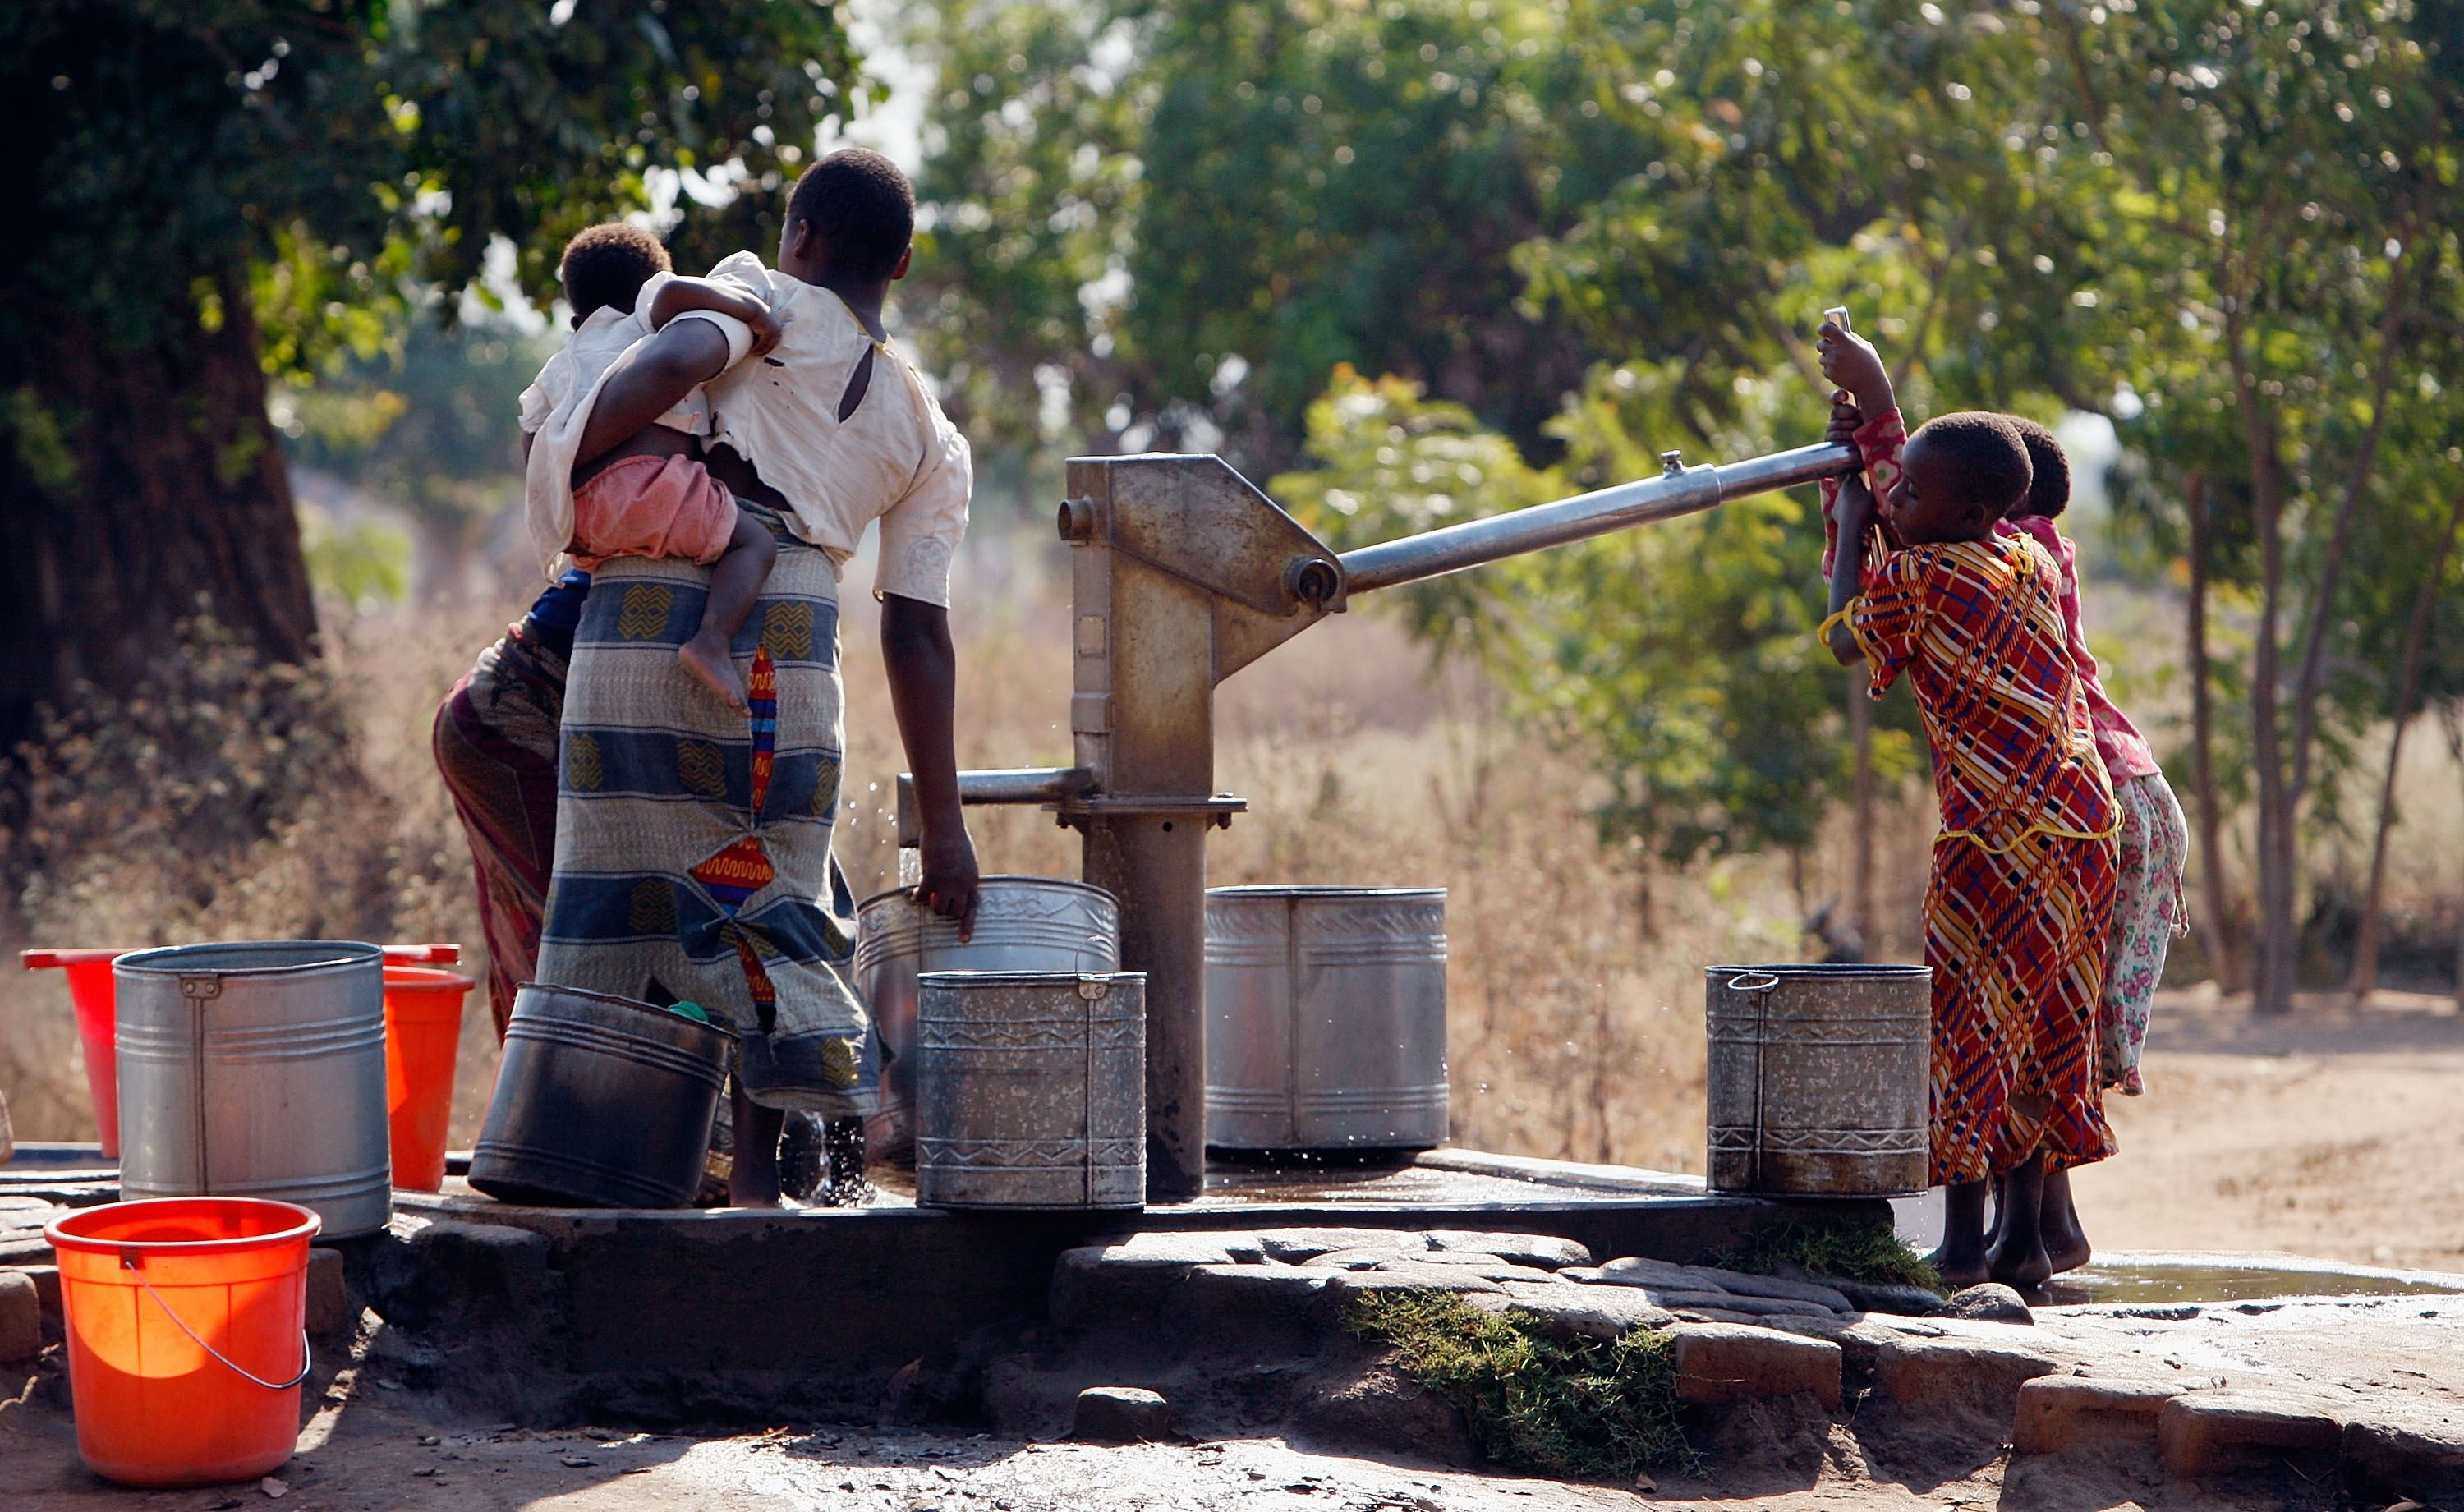 Children pump water in Ligwangwa, Malawi